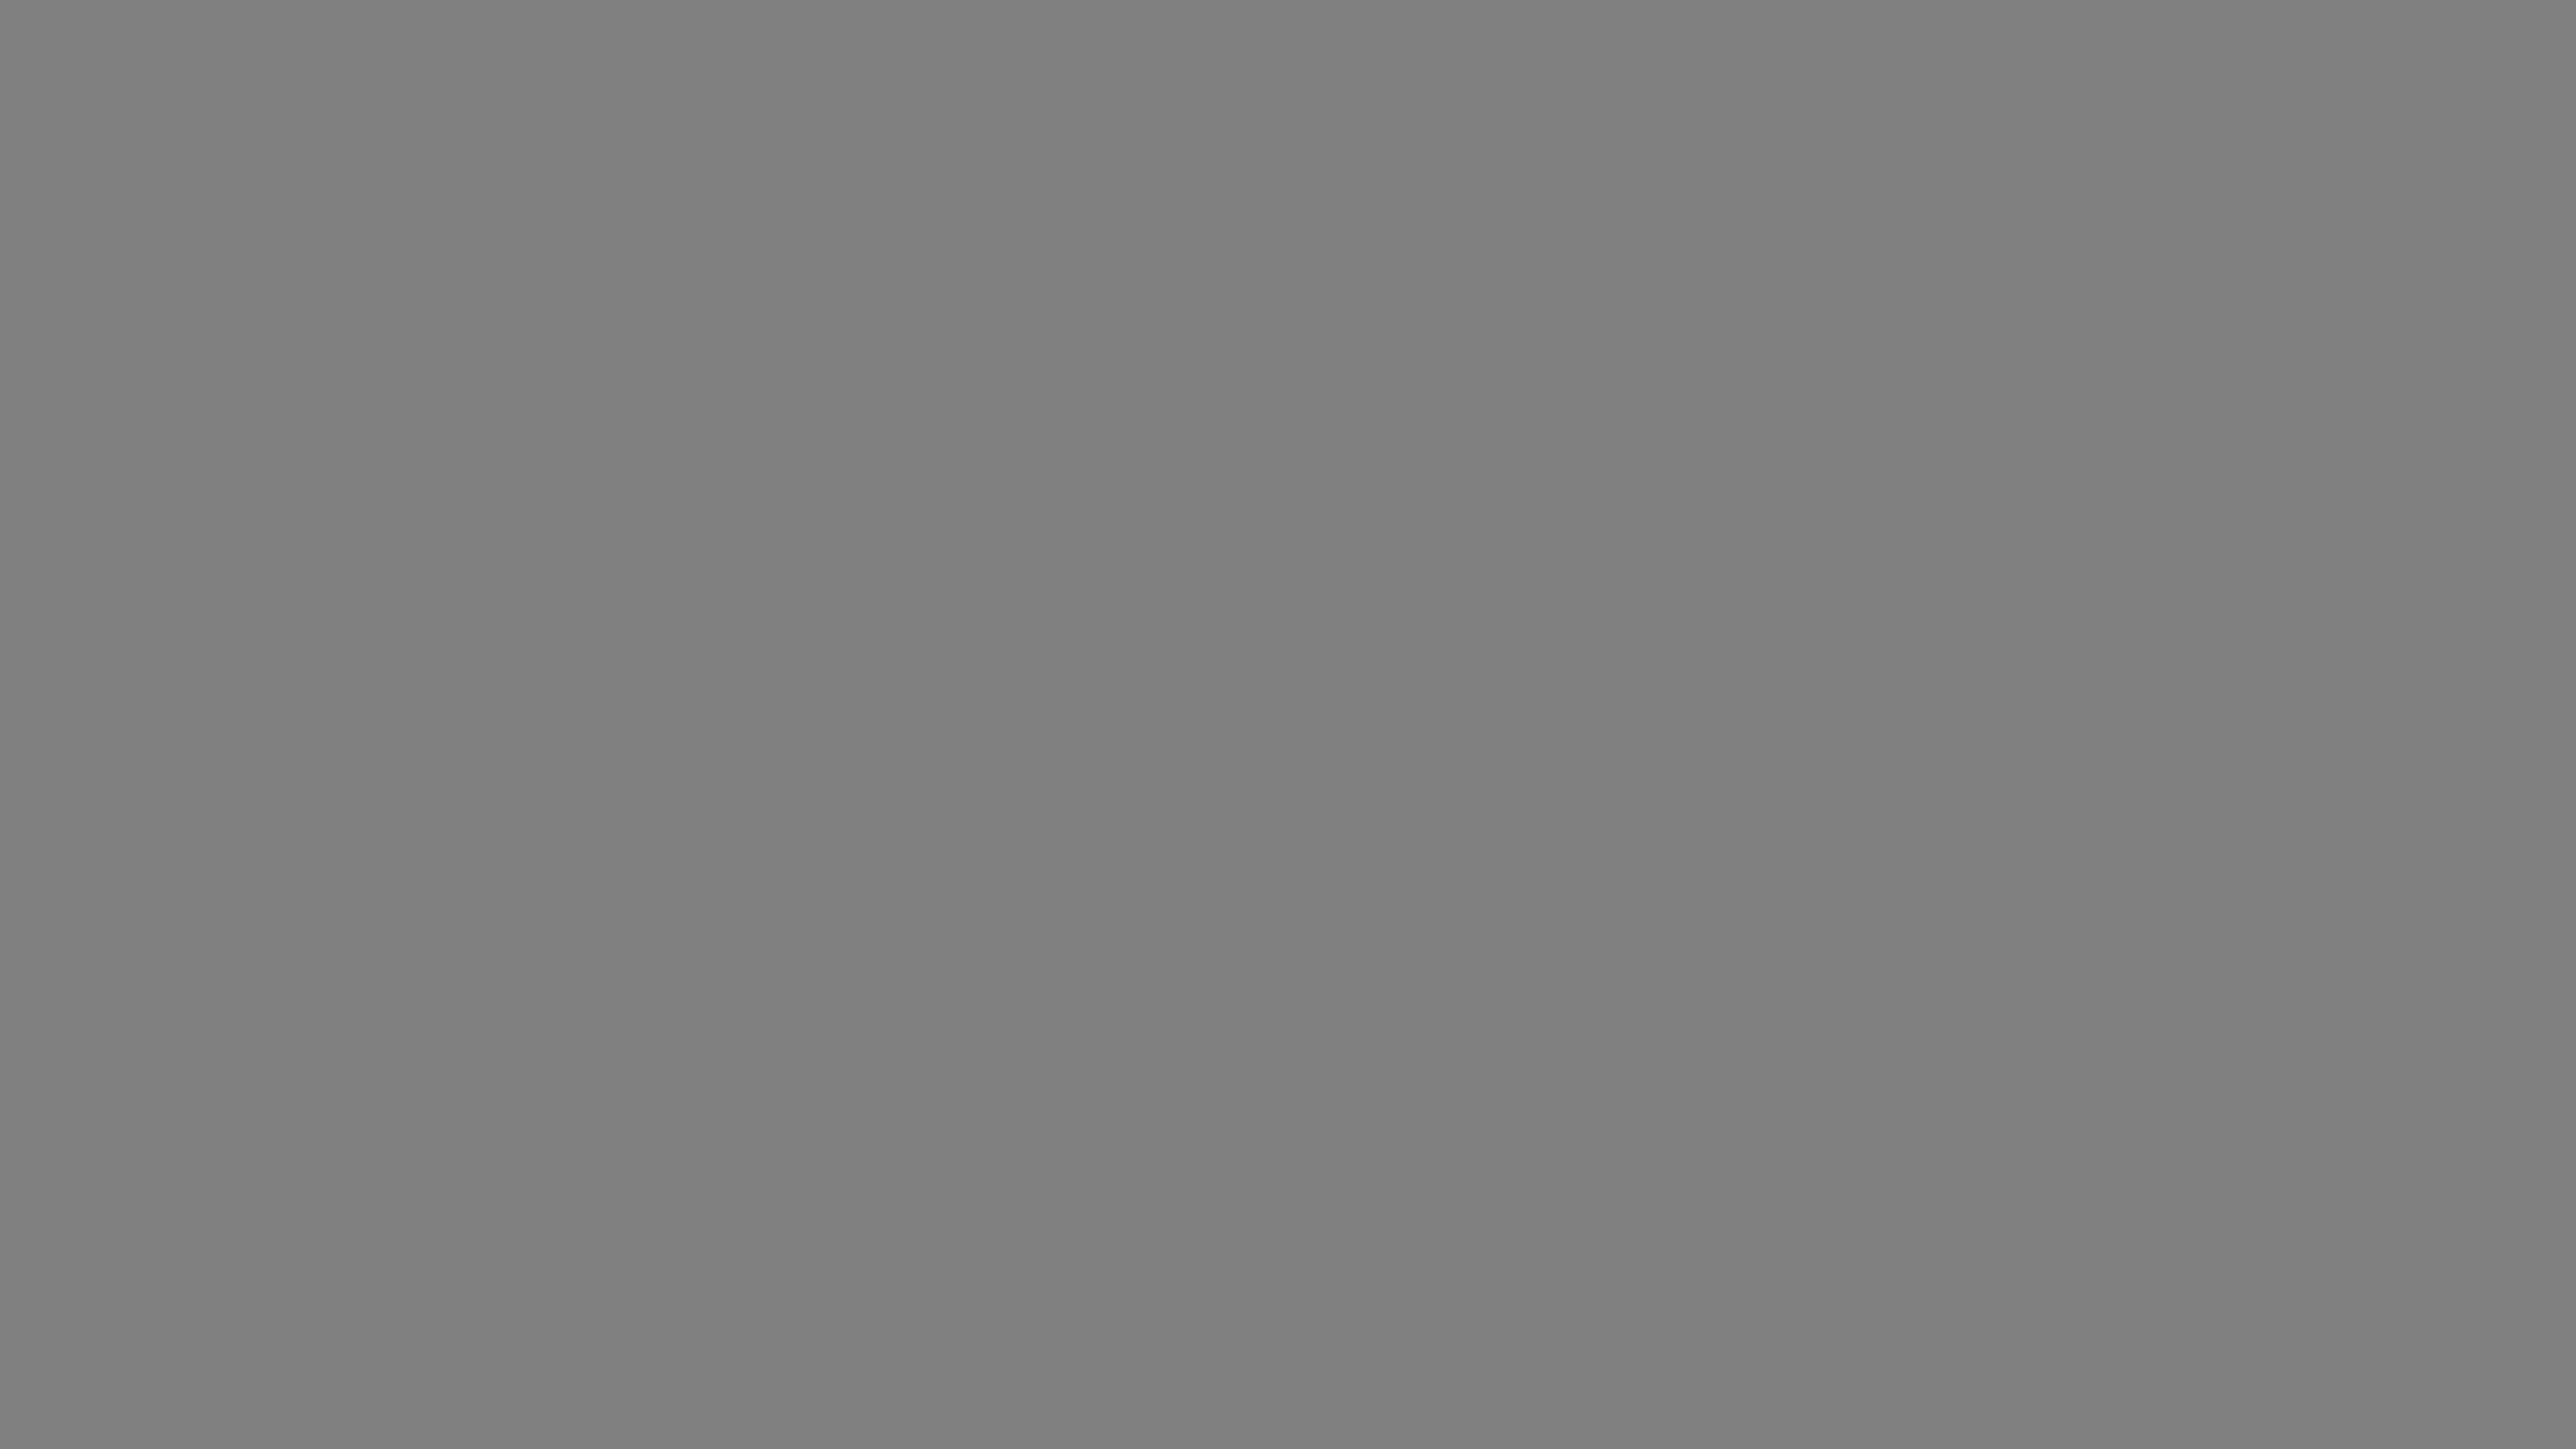 4096x2304 Trolley Grey Solid Color Background